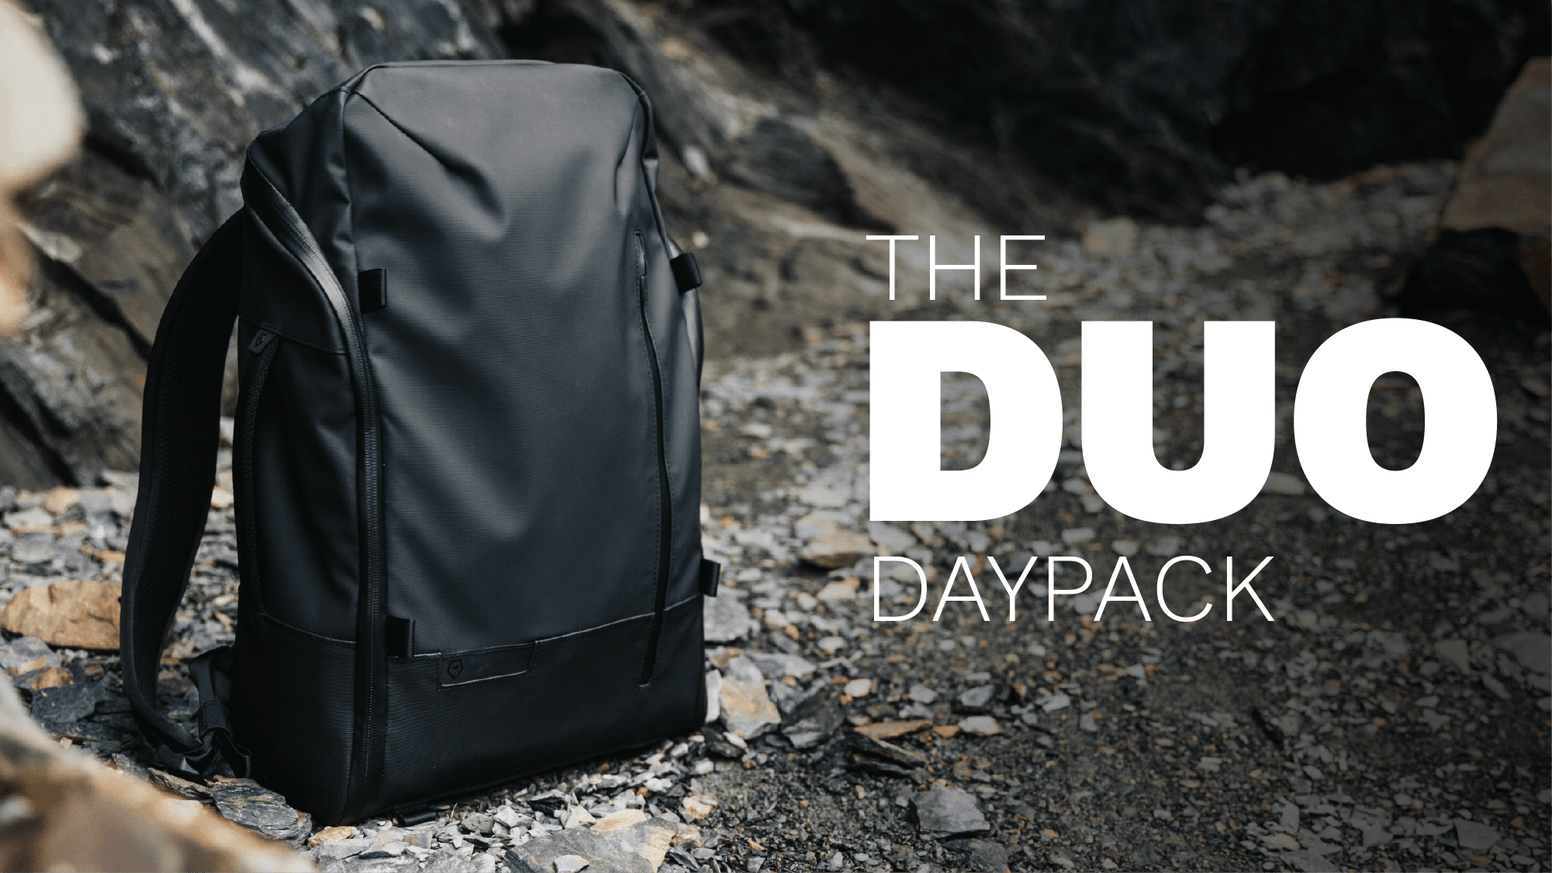 A dawn-to-dusk daypack for commuters, creators, photographers, and travelers looking to elevate the way they carry their daily gear.